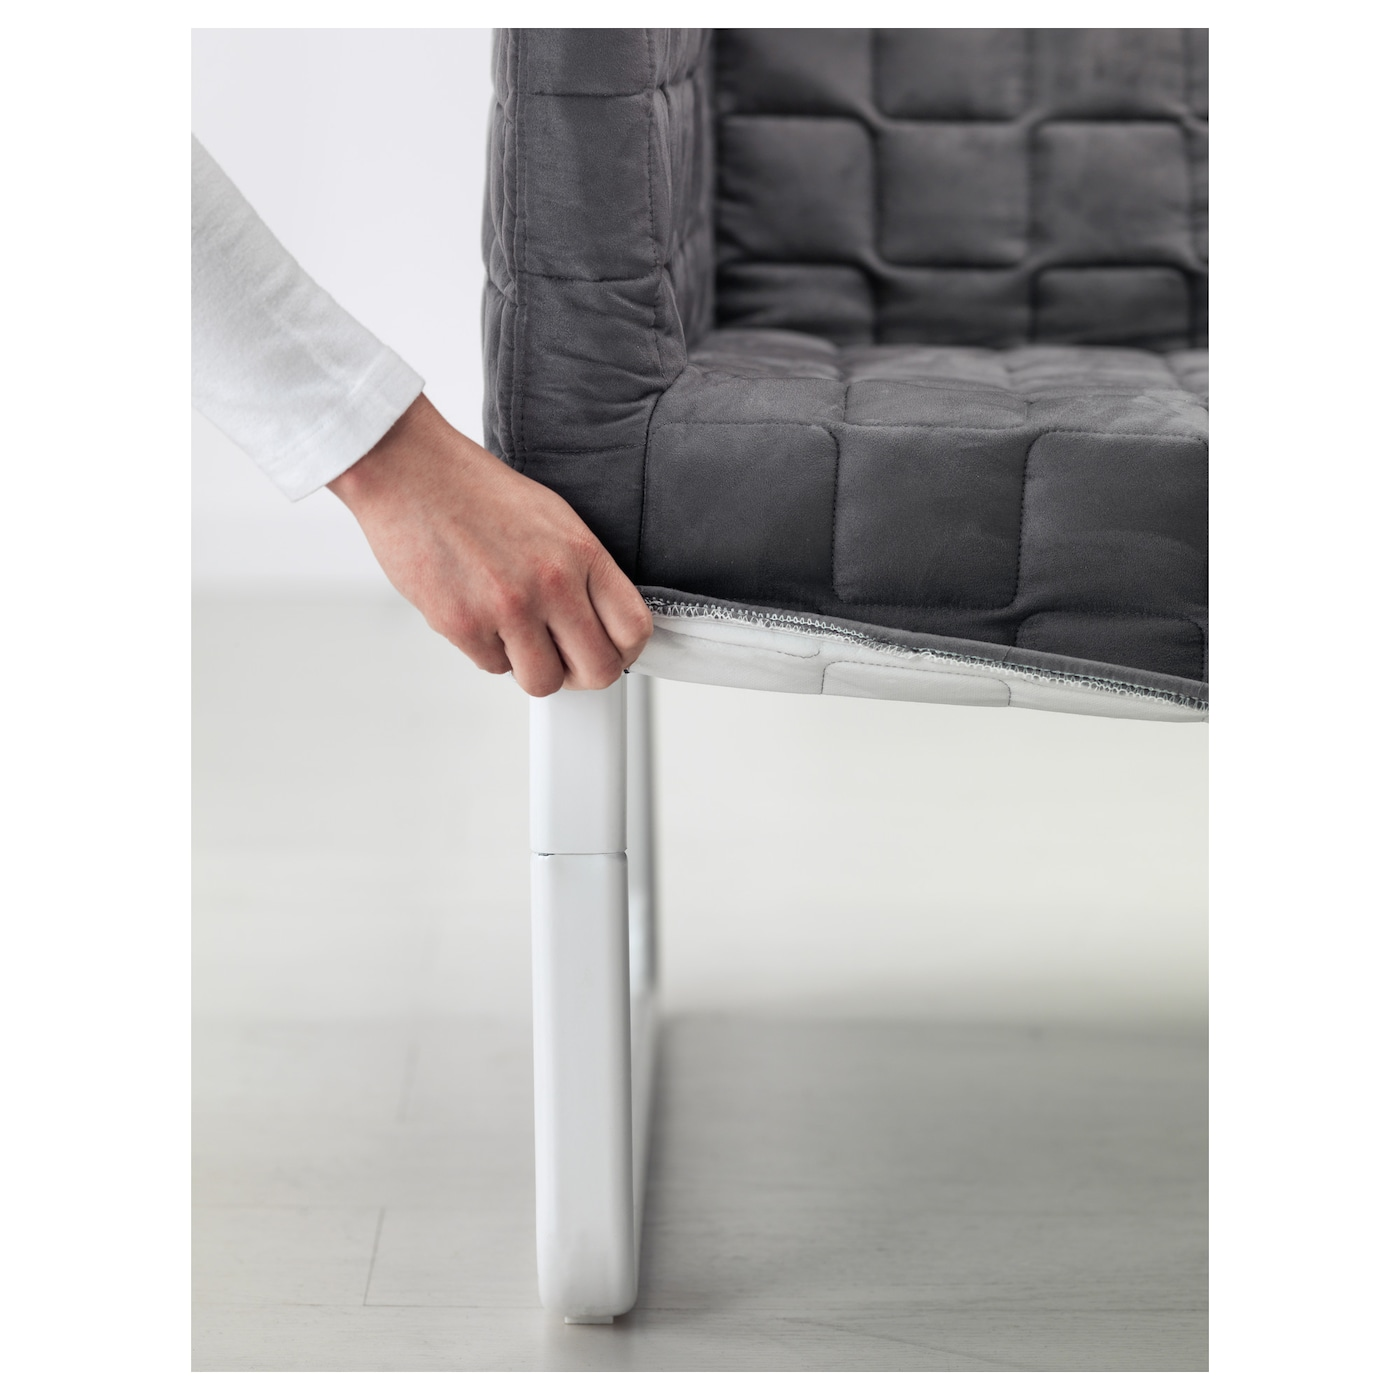 IKEA KNOPPARP 2-seat sofa Small and smart packaging - easy to take home on the bus or subway.